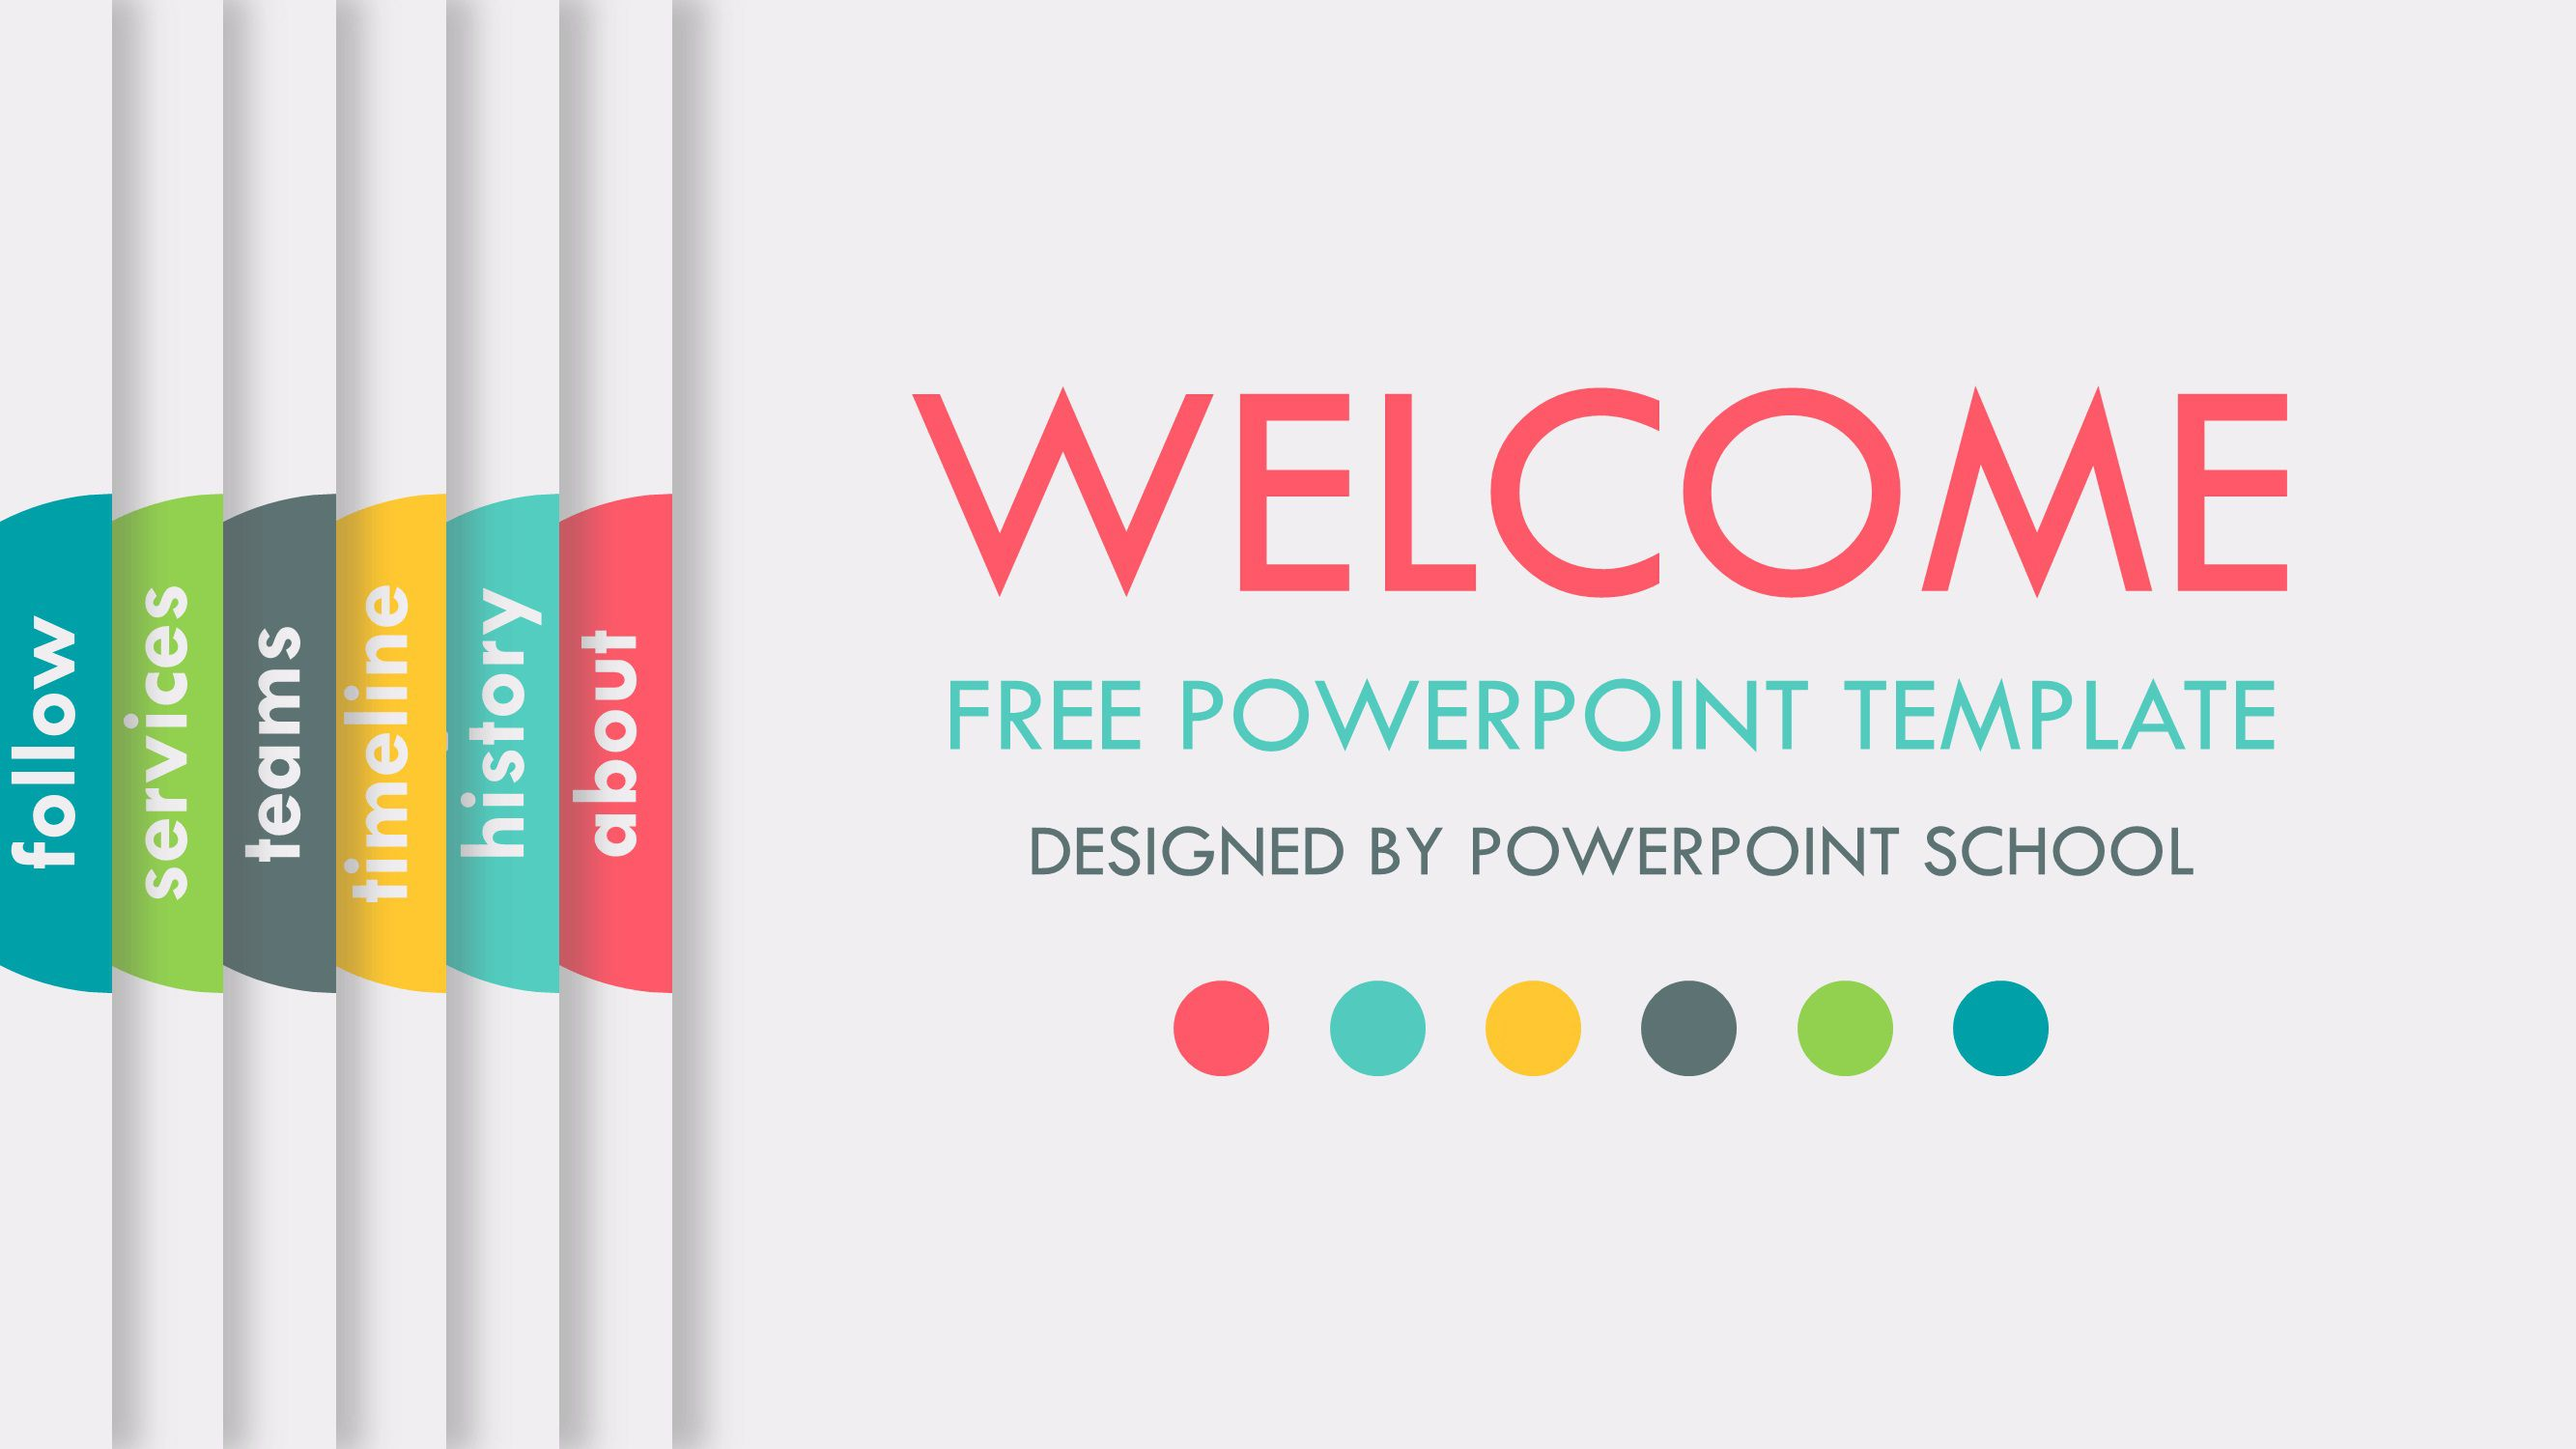 004 Frightening Animation Powerpoint Template Free Highest Clarity  Animated Download 2019 2010Full